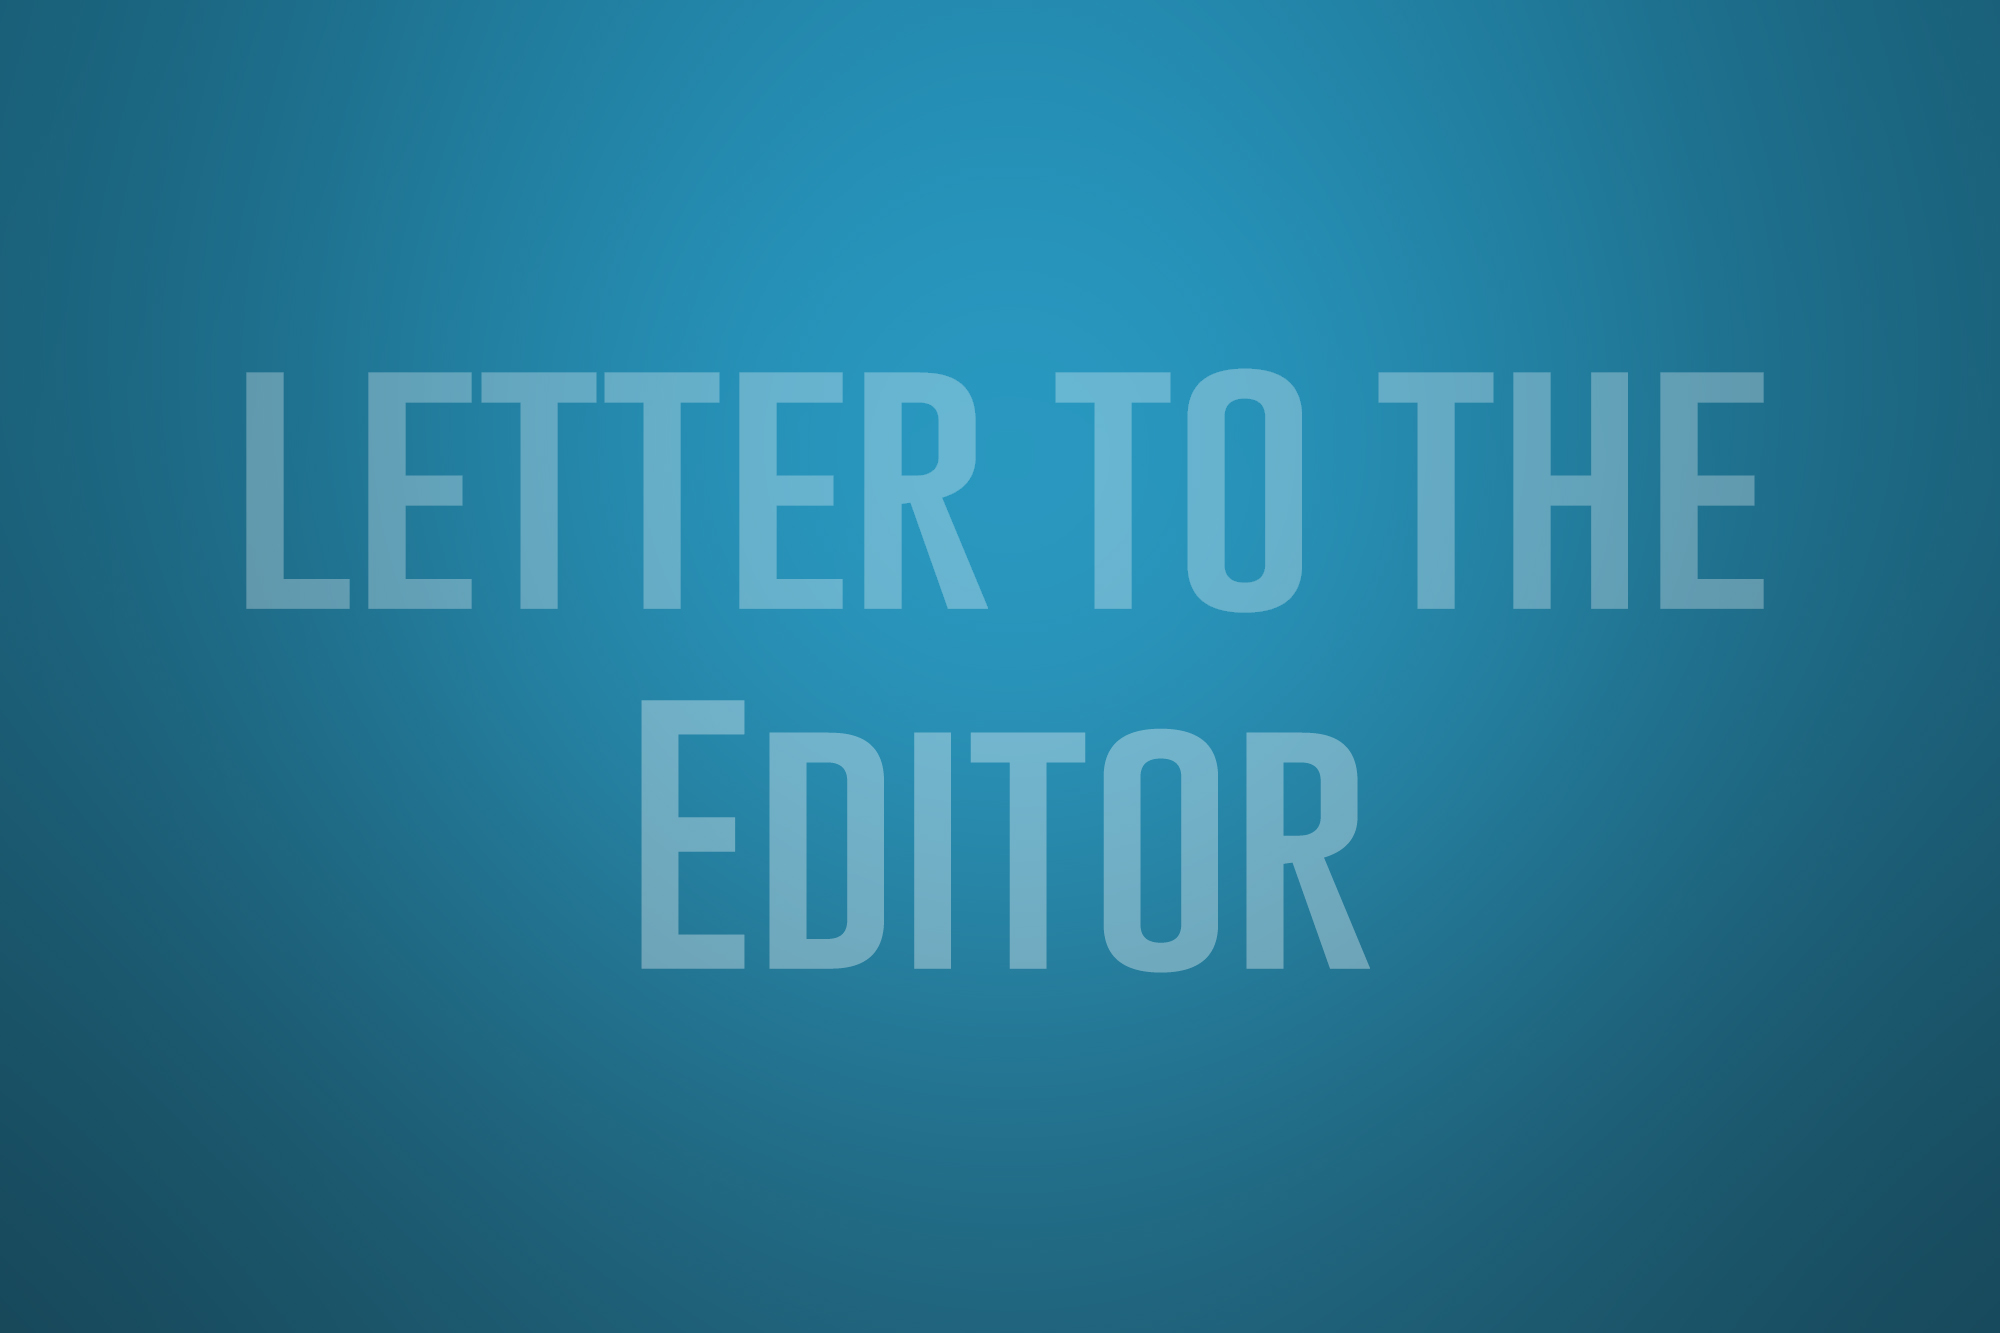 Letter to the Editor: A Nebraska fan's take on CU